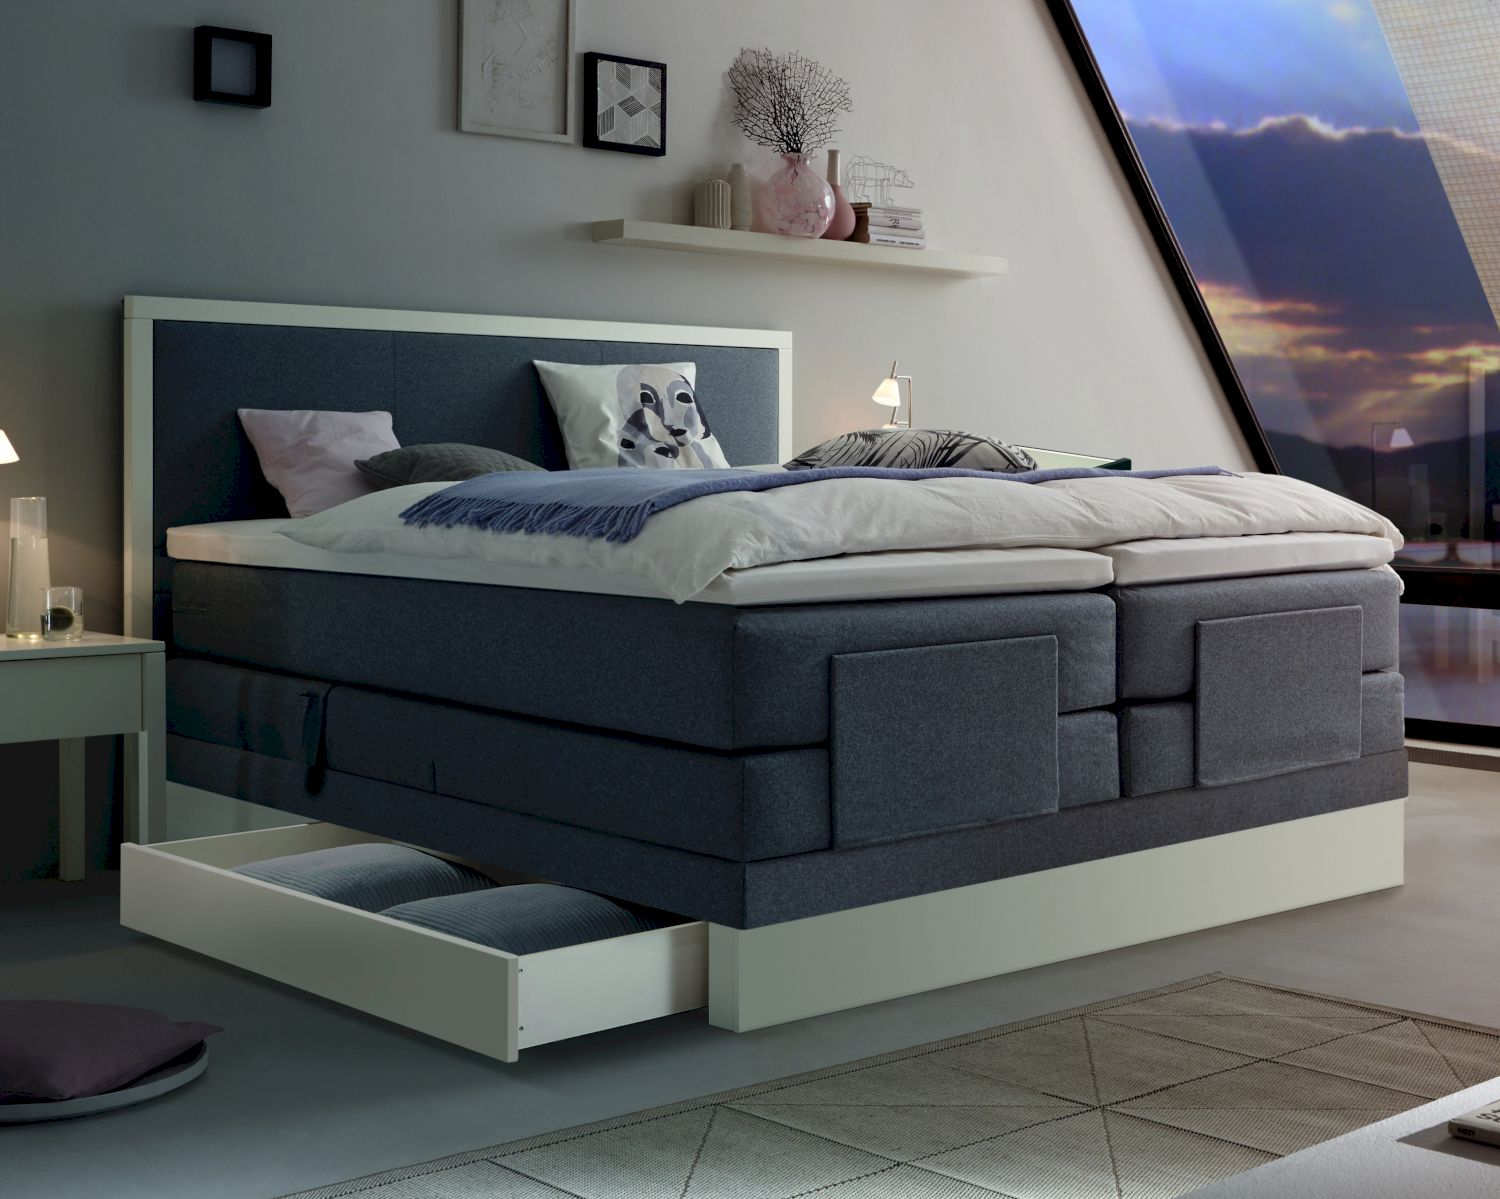 hasena boxspringbett solution bettkastensan pietro. Black Bedroom Furniture Sets. Home Design Ideas